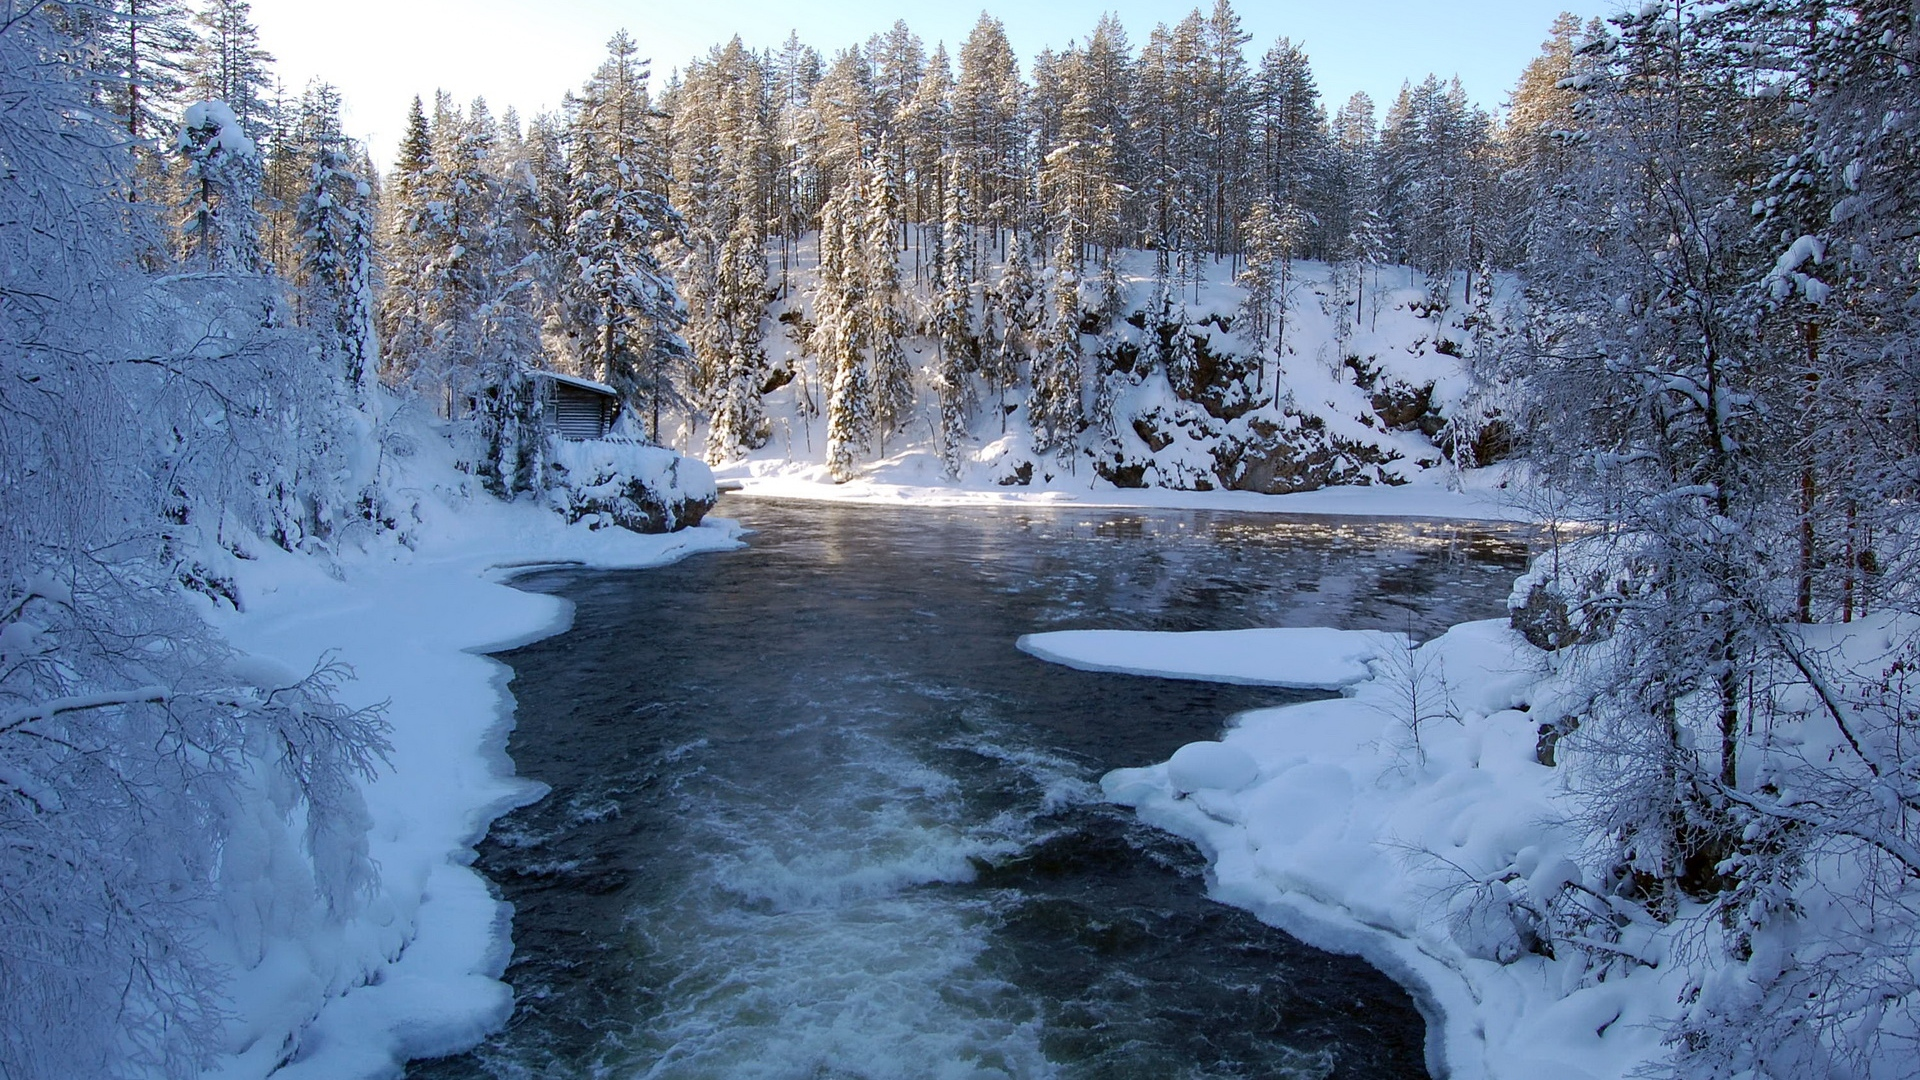 Download Wallpaper 1920x1080 River, Finland, Ice, Snow